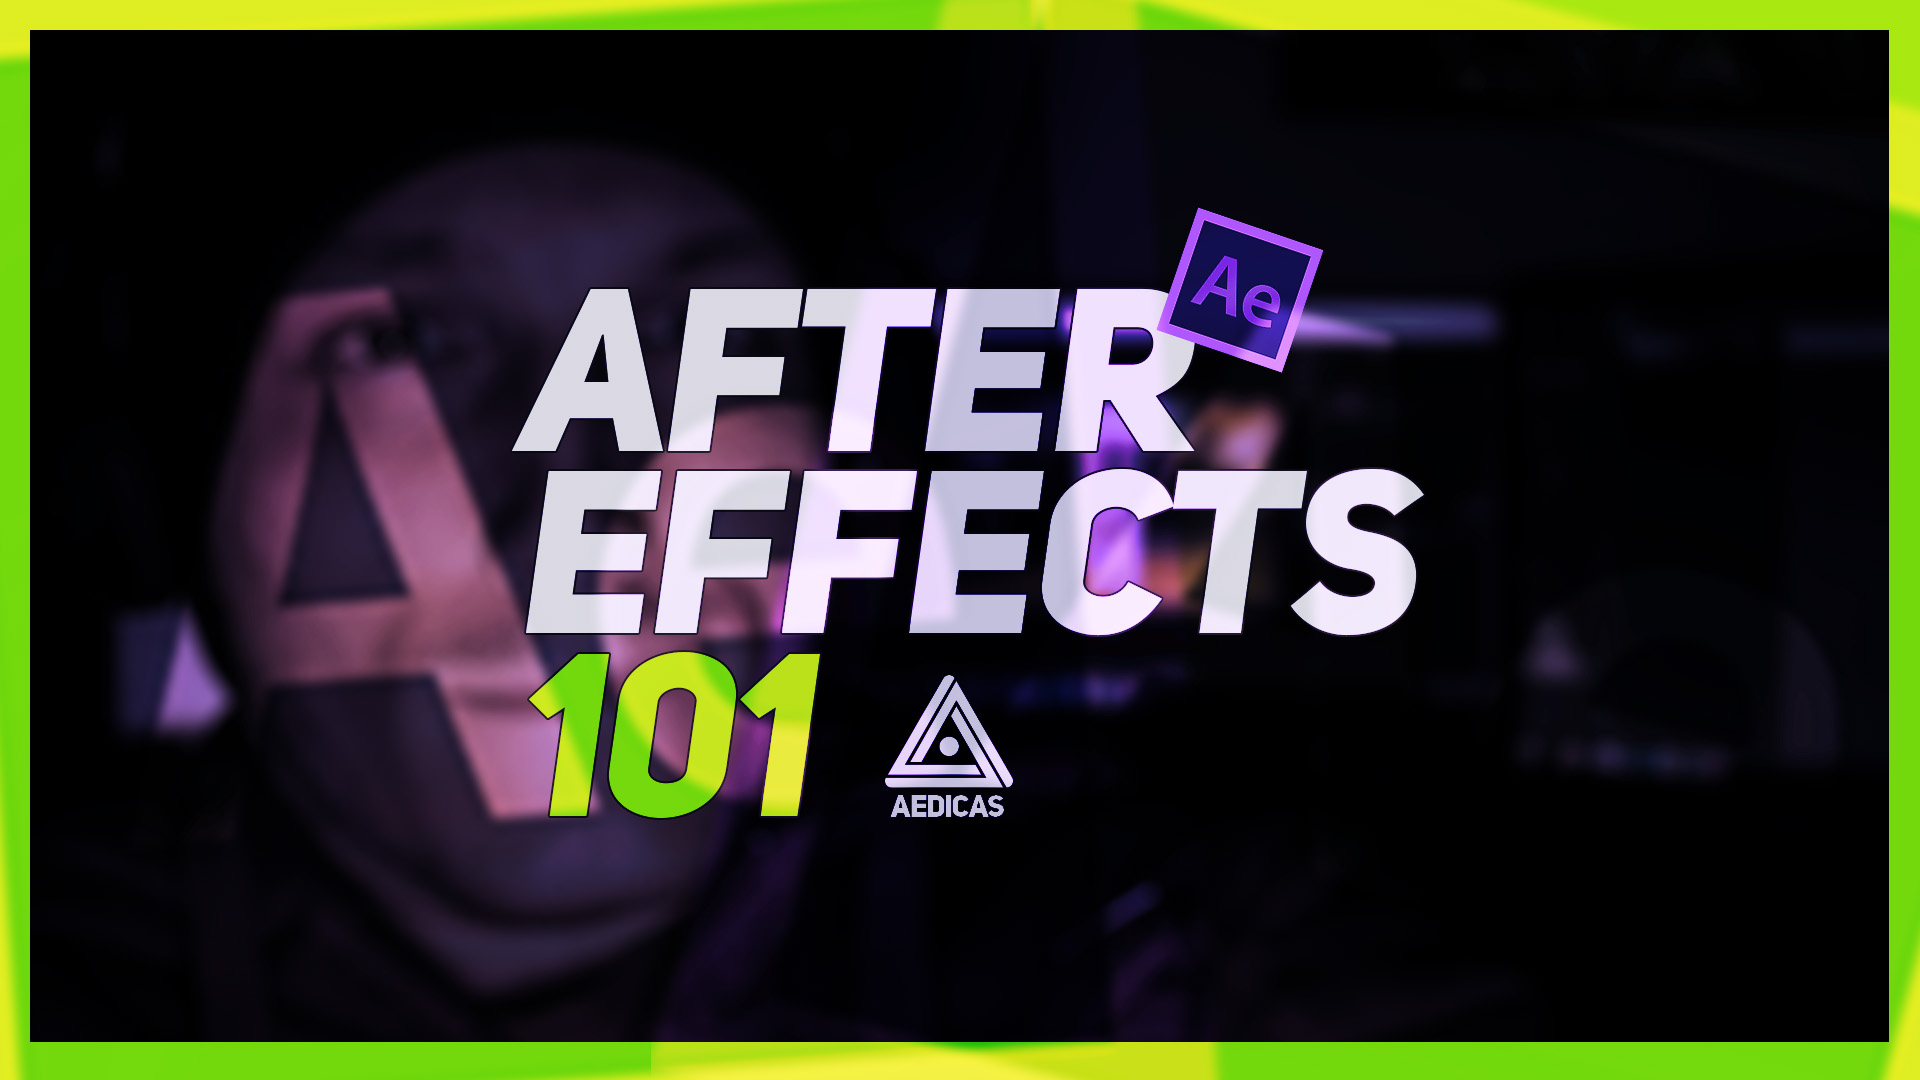 Tutorial em vídeo] Usando o efeito Beam no After Effects | AEdicas